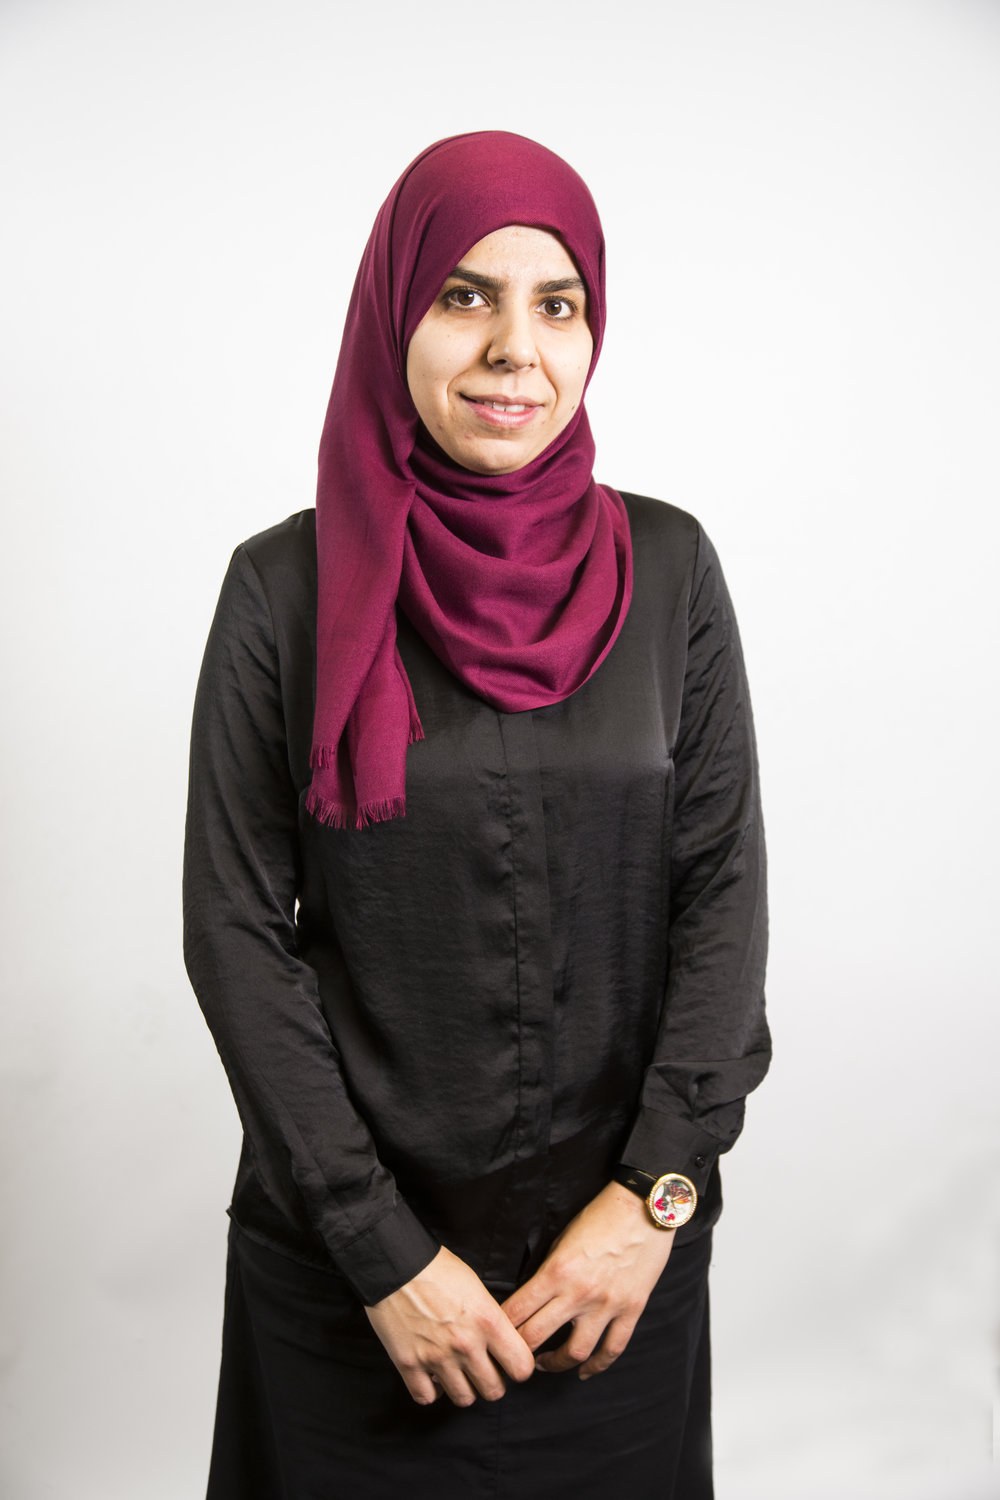 Omaima El Kebbe  (English, Arabic)  Omaima joined us in 2016 to help newcomers to Kitchener-Waterloo settle in Canada. She was born in Palestine and raised in Dubai, UAE. In 2009, she moved to Canada with her family and became a proud Canadian citizen in 2014.  She earned a B.Sc in Medical Laboratory Sciences from Haigazian University in Lebanon and a B.Sc. in Public Health from the University of Lethbridge.  Omaima loves working with newcomers to Canada and enjoys helping others reach their goals by providing support as they adjust to their new home.  In her free time she enjoys reading and baking yummy treats for her boys.